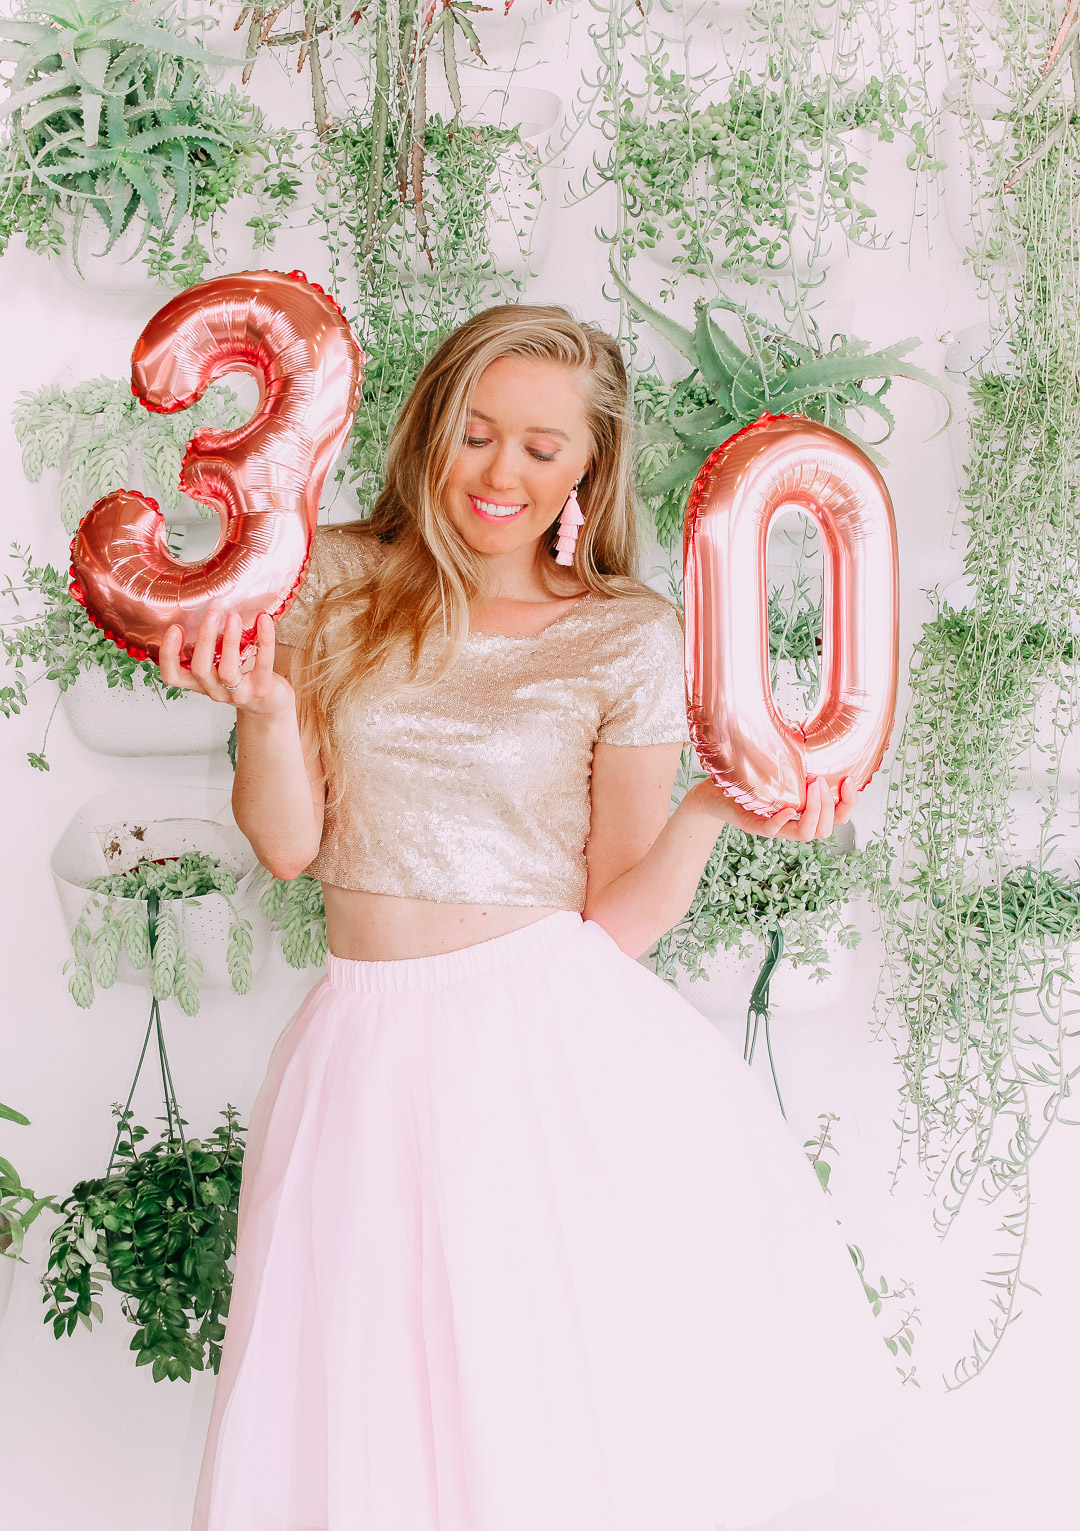 30 Life Lessons I Learned Before My 30th Birthday Love Jen Marie Individual happy birthday collage create a collage in form of a number or name up to 100 photos add birthday wishes digital file or xxl print. i learned before my 30th birthday